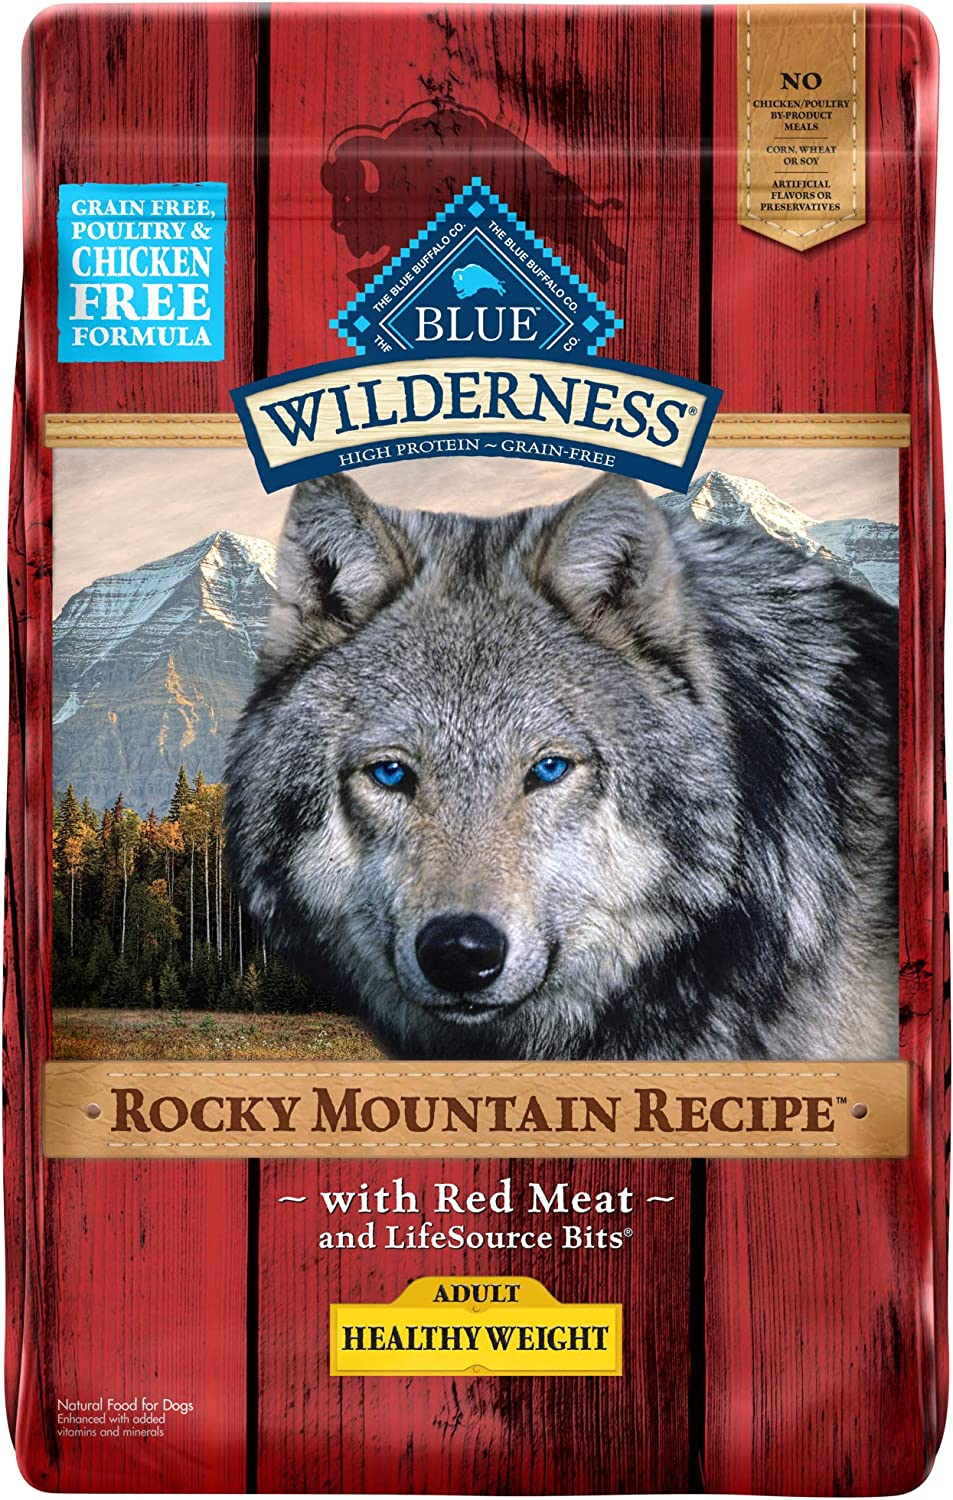 Blue Buffalo Wilderness Rocky Mountain Recipe High Protein Grain Free, Natural Adult Healthy Weight Dry Dog Food